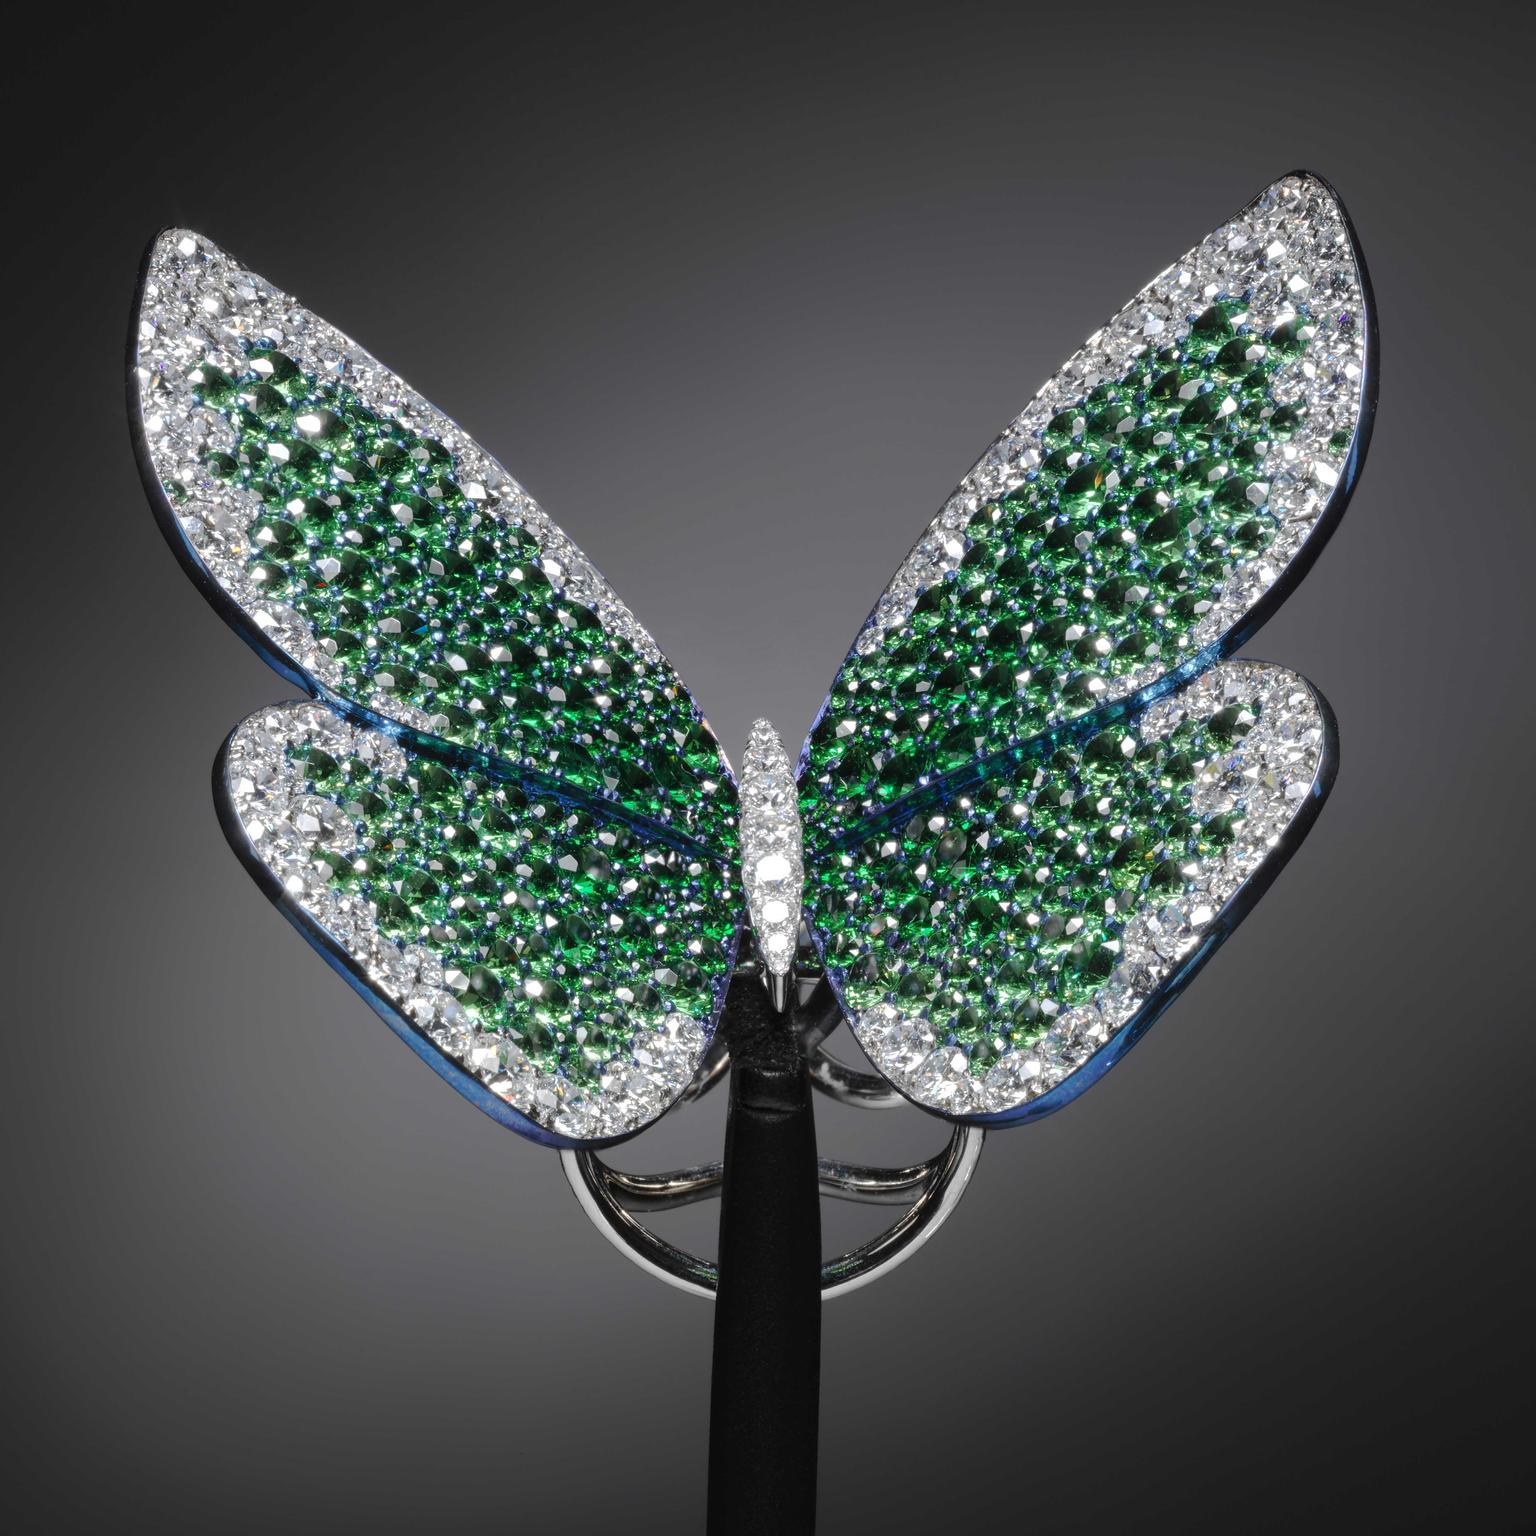 Papillon ring by G Glenn Spiro that Beyonce has donated to V and A museum in London